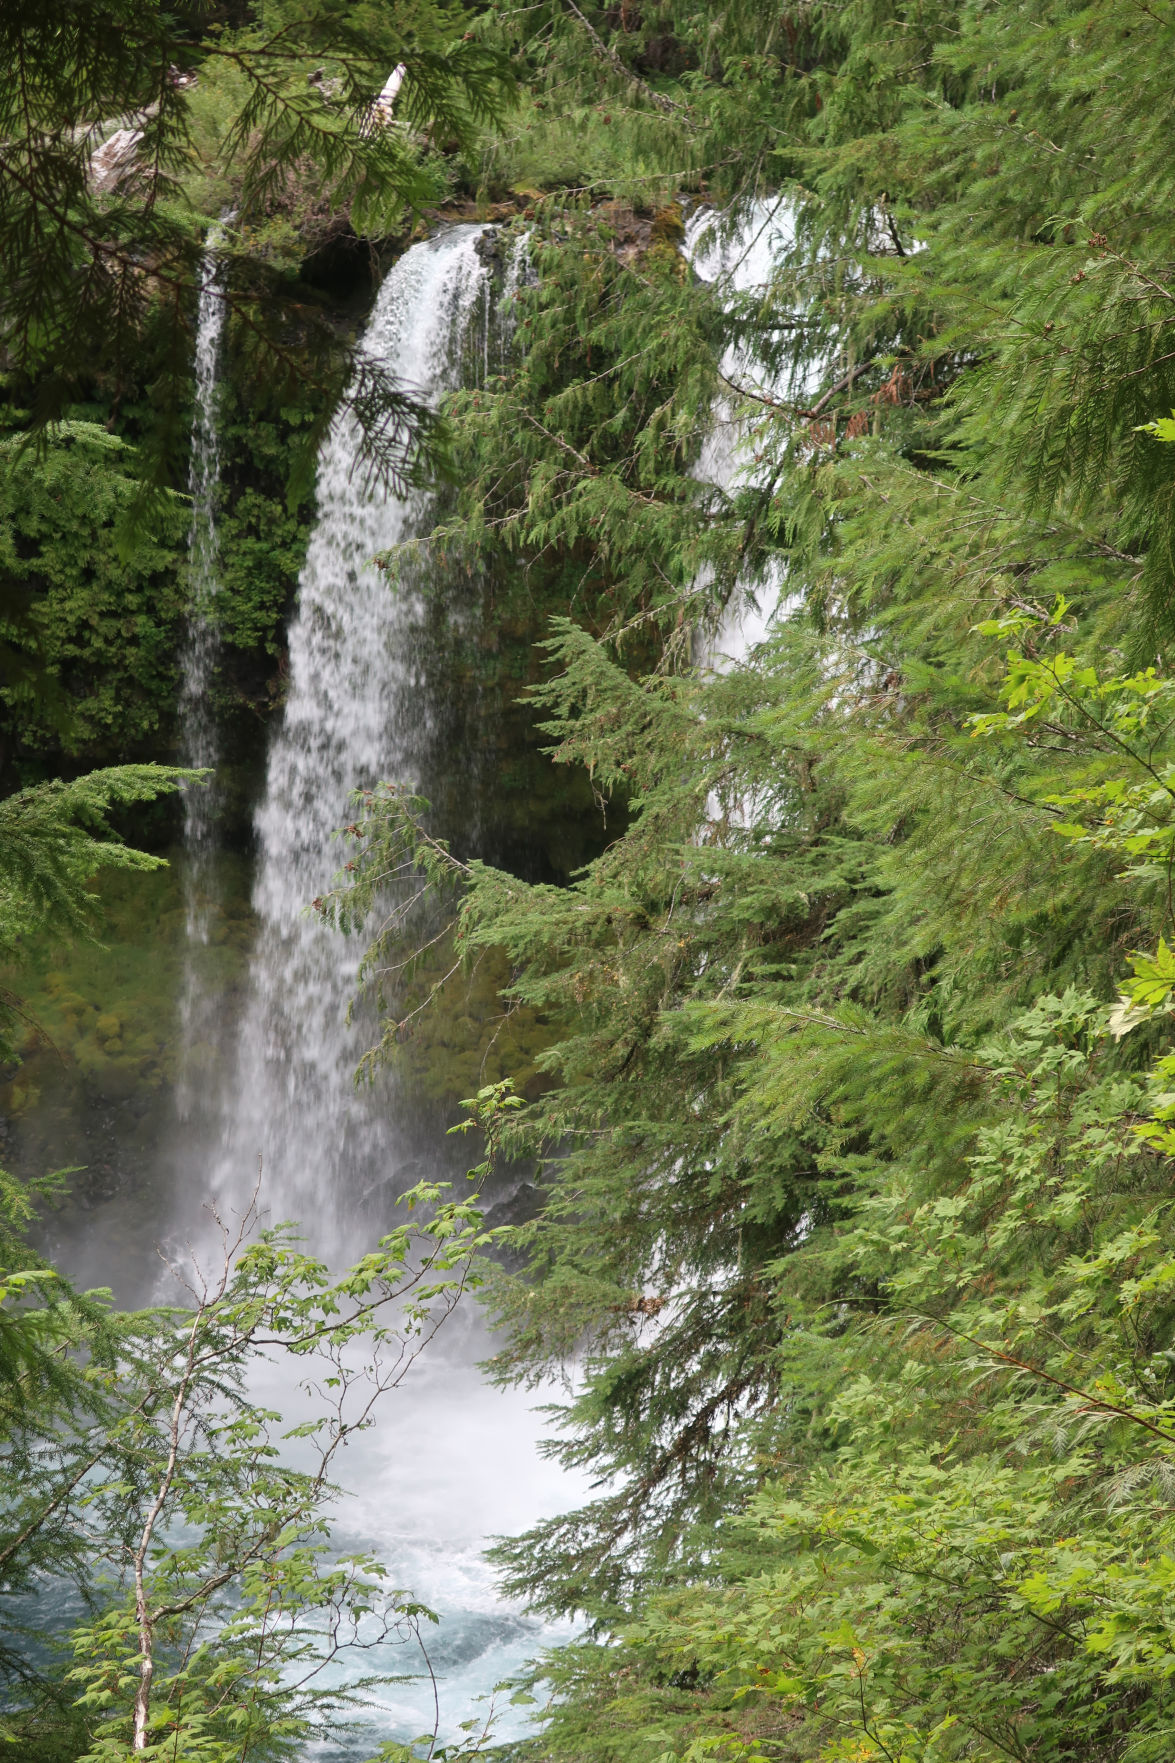 Hiking the waterfalls on the McKenzie River Trail twice is a good idea